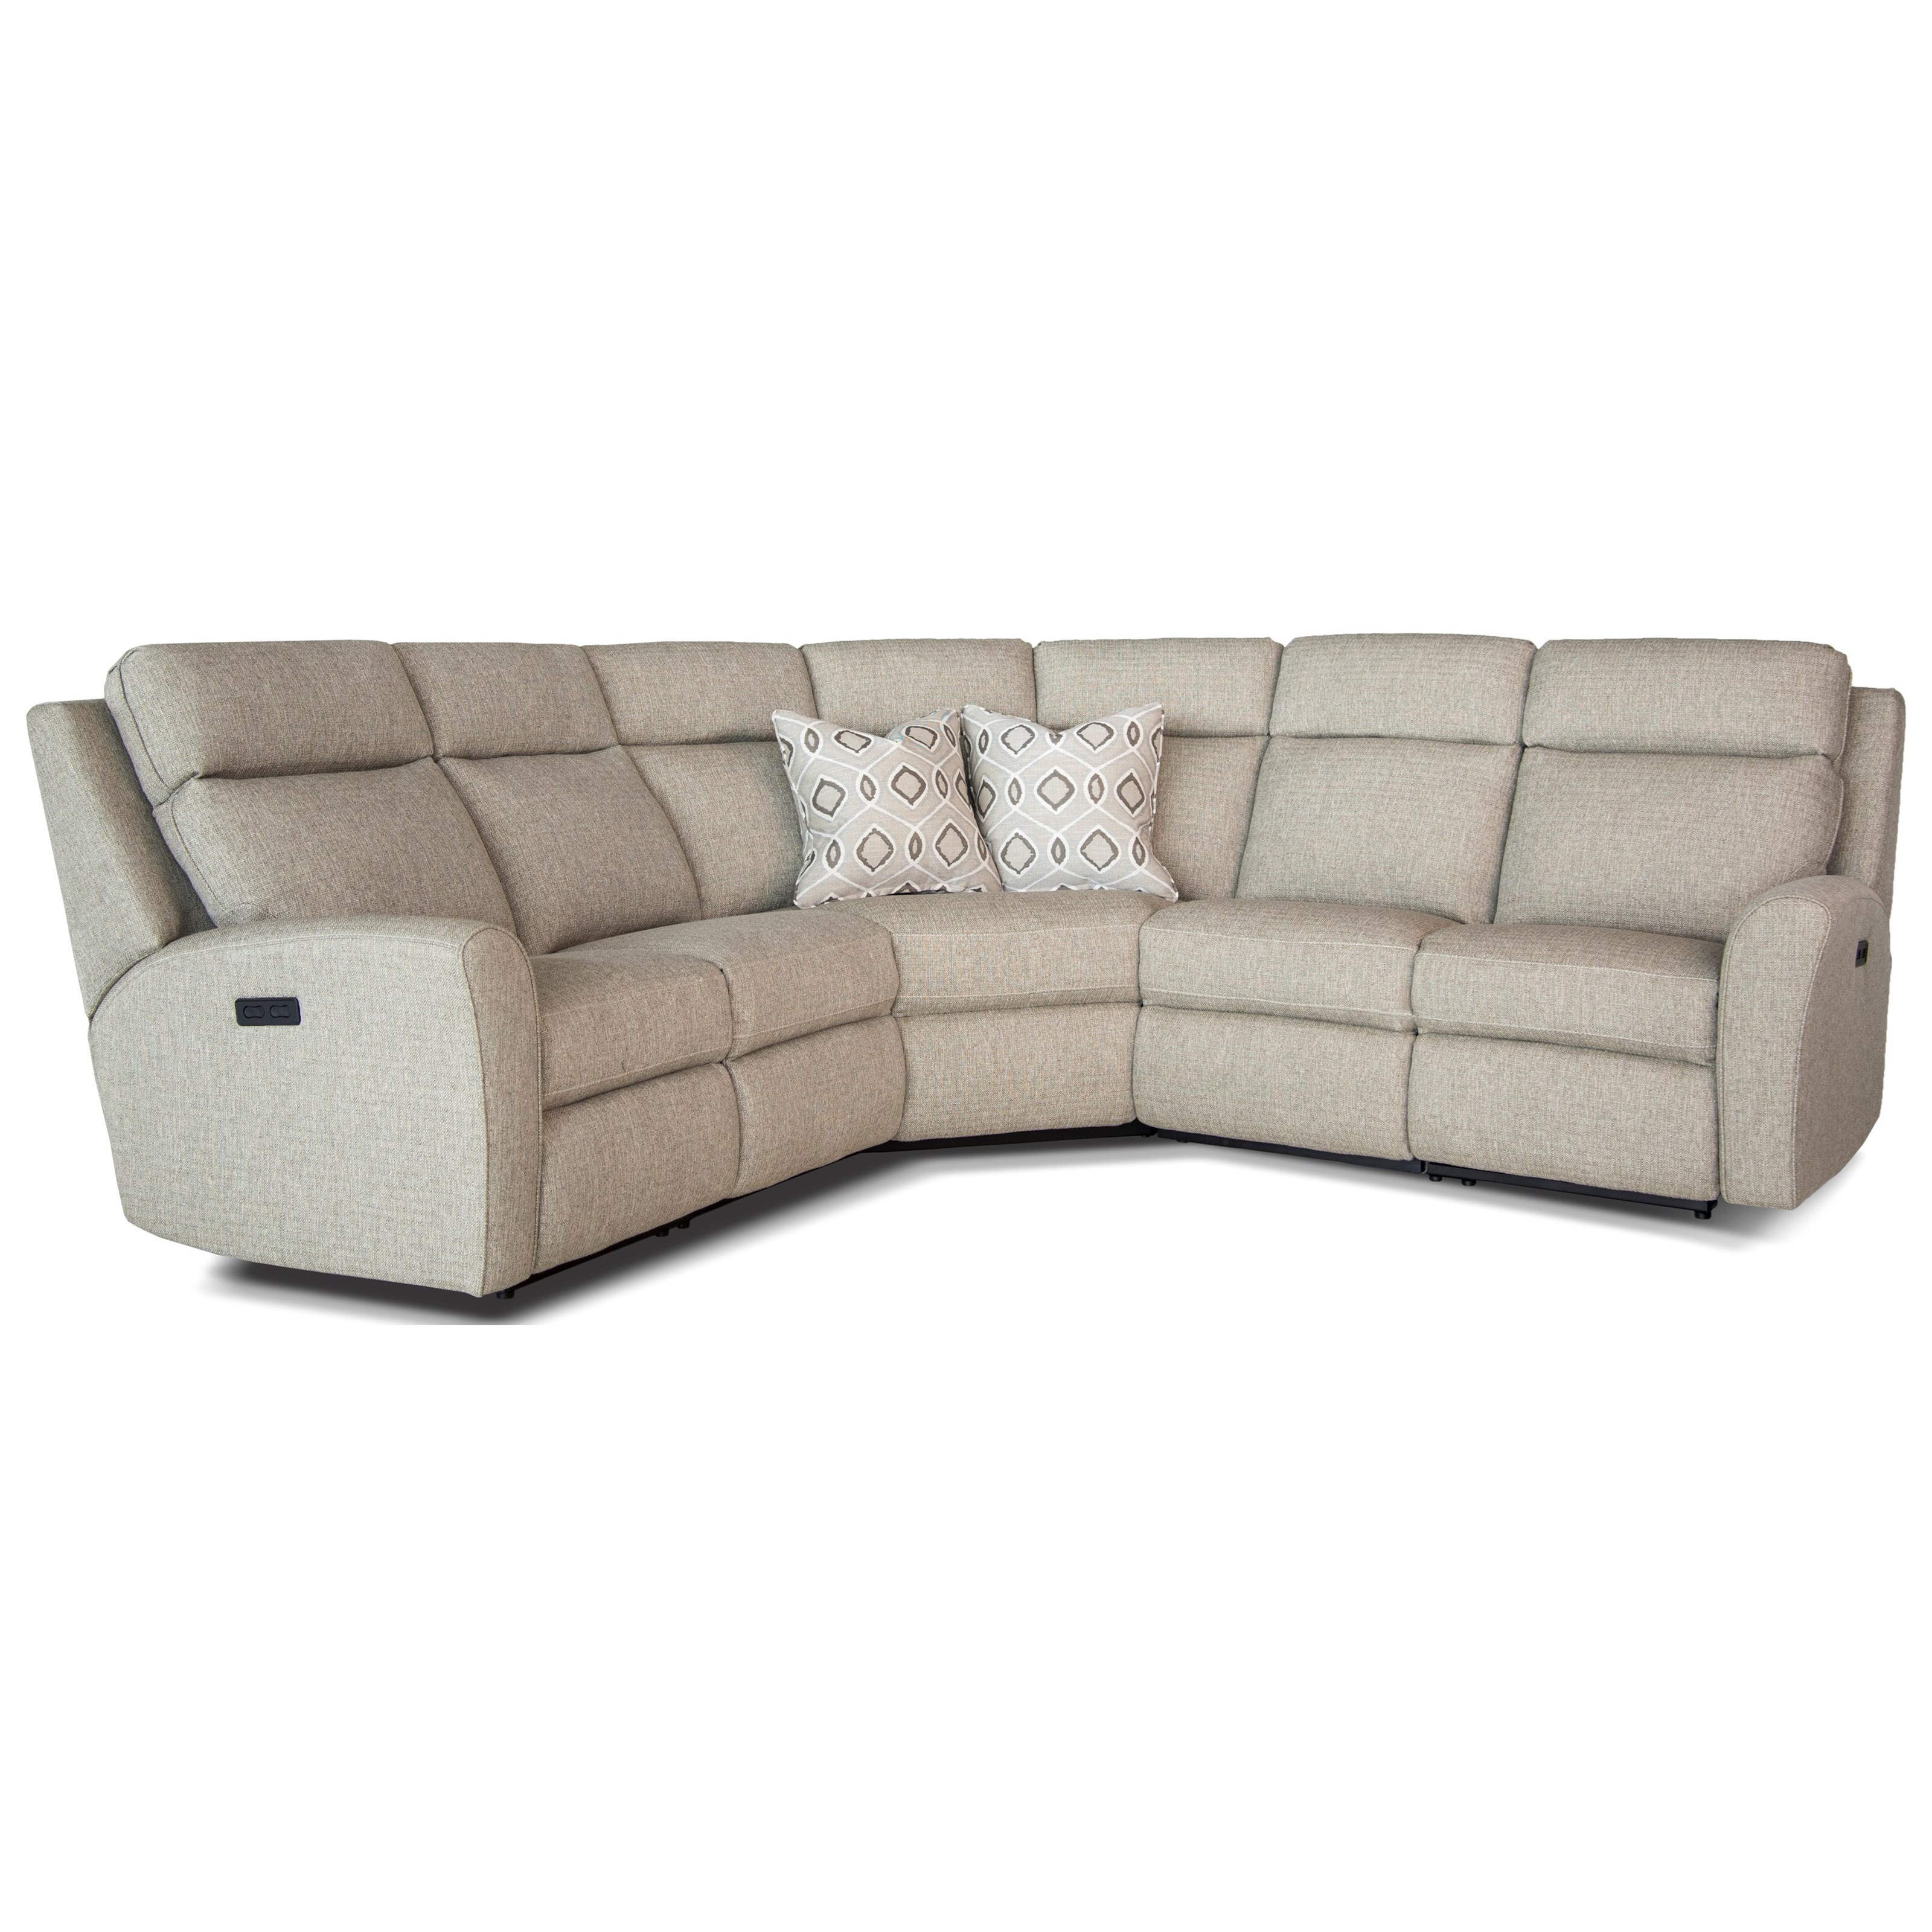 Terrific Casual Motorized Reclining Sectional Sofa With Flared Arms Gmtry Best Dining Table And Chair Ideas Images Gmtryco